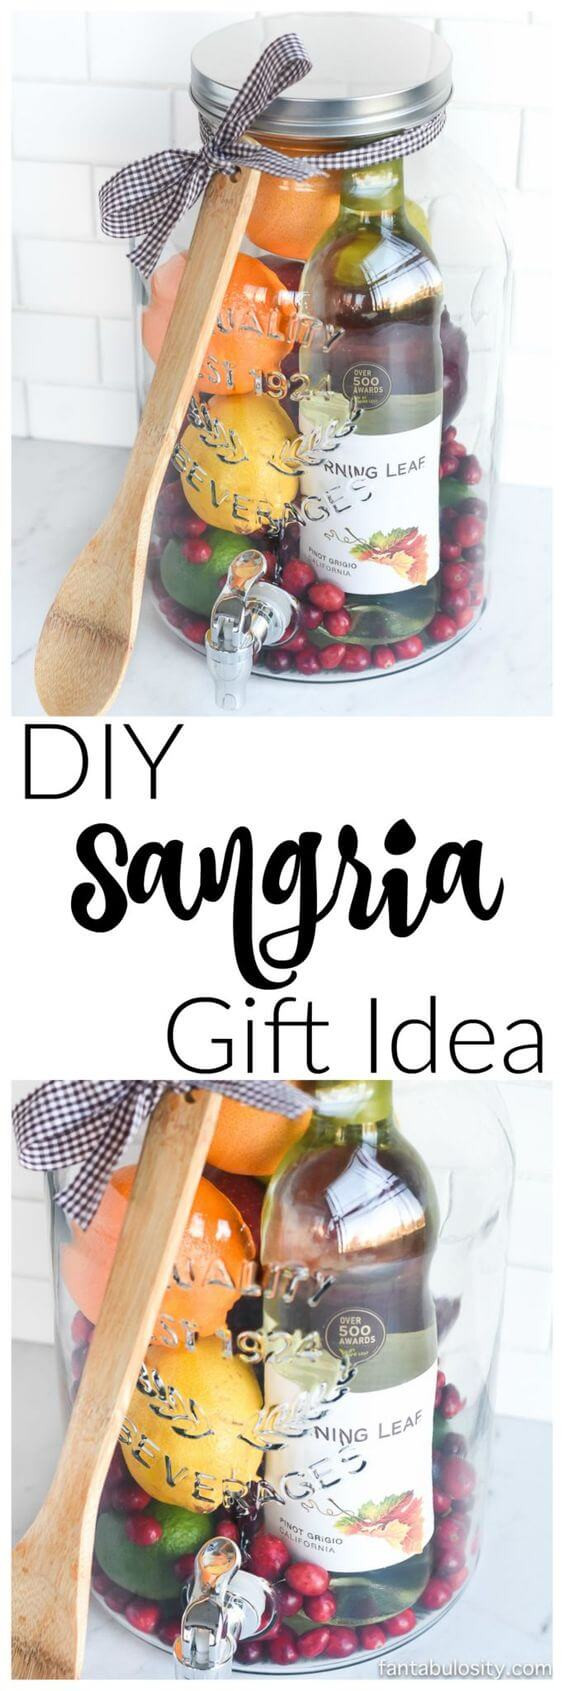 Best ideas about Hostess Gift Ideas For Baby Shower . Save or Pin Baby Shower Hostess Gifts Now.